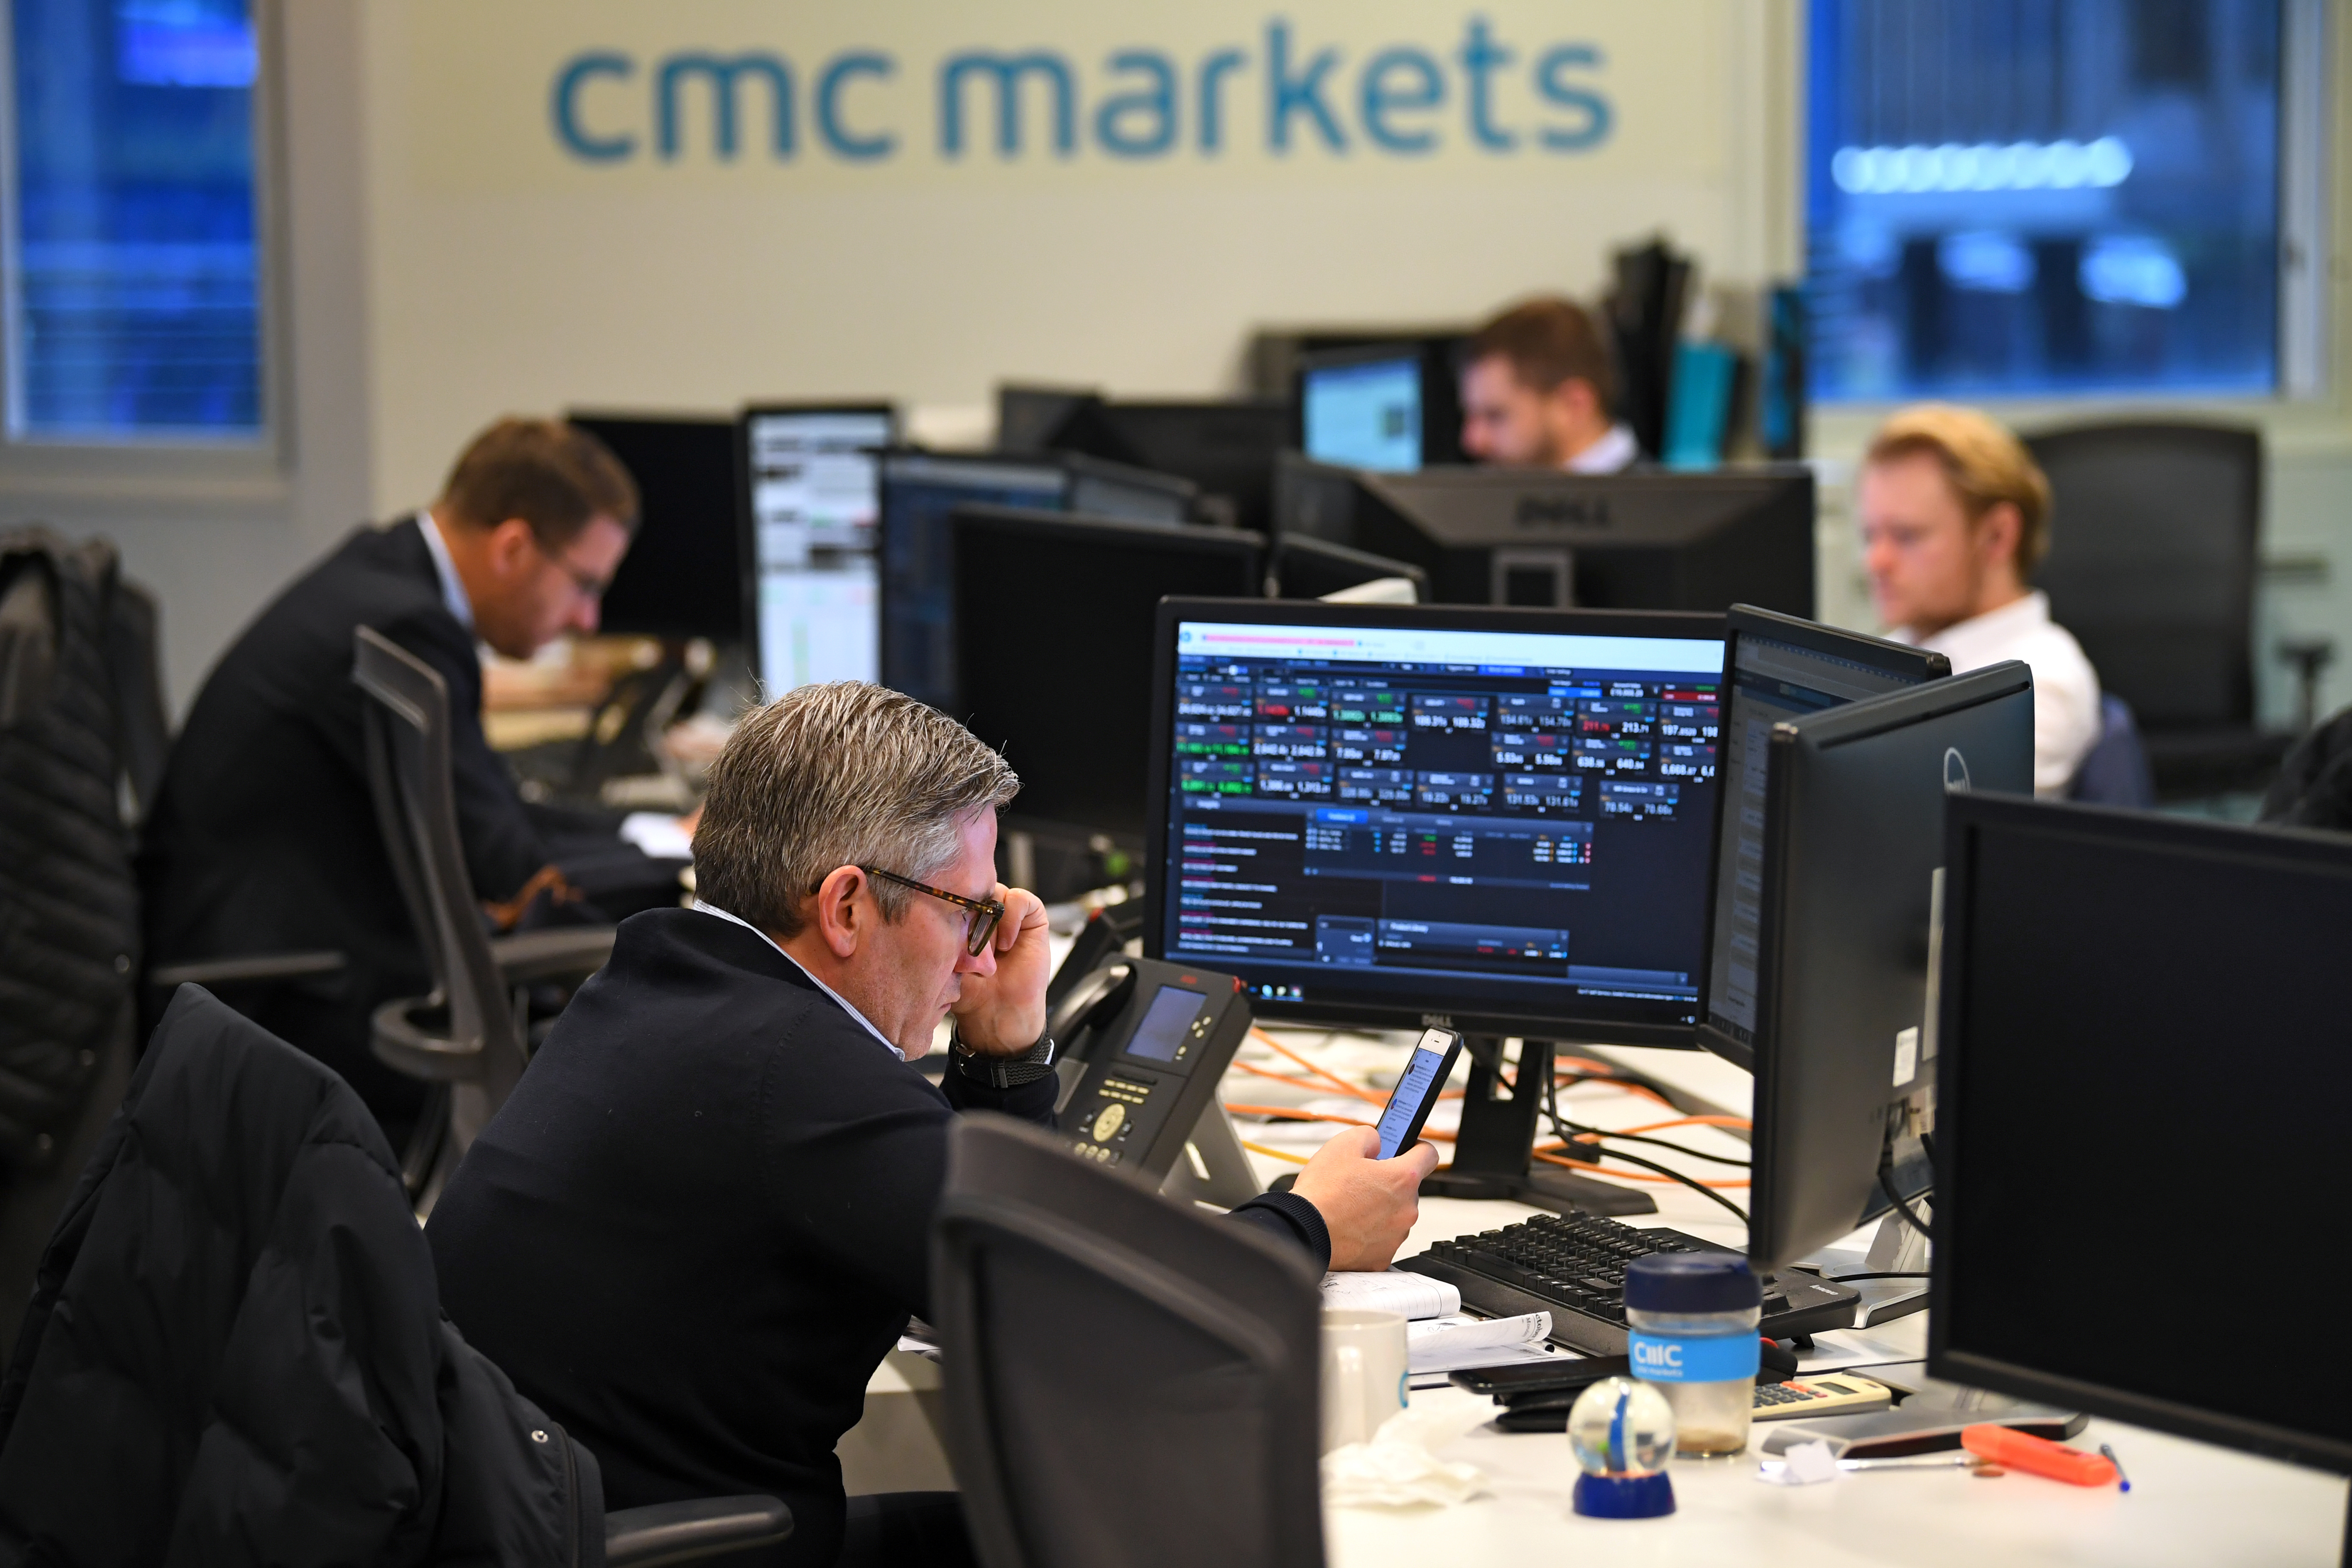 Dealers work at their desks whilst screens show market data following a vote on Prime Minister Theresa May's Brexit 'plan B' at CMC Markets in London, Britain, January 30, 2019. REUTERS/Dylan Martinez